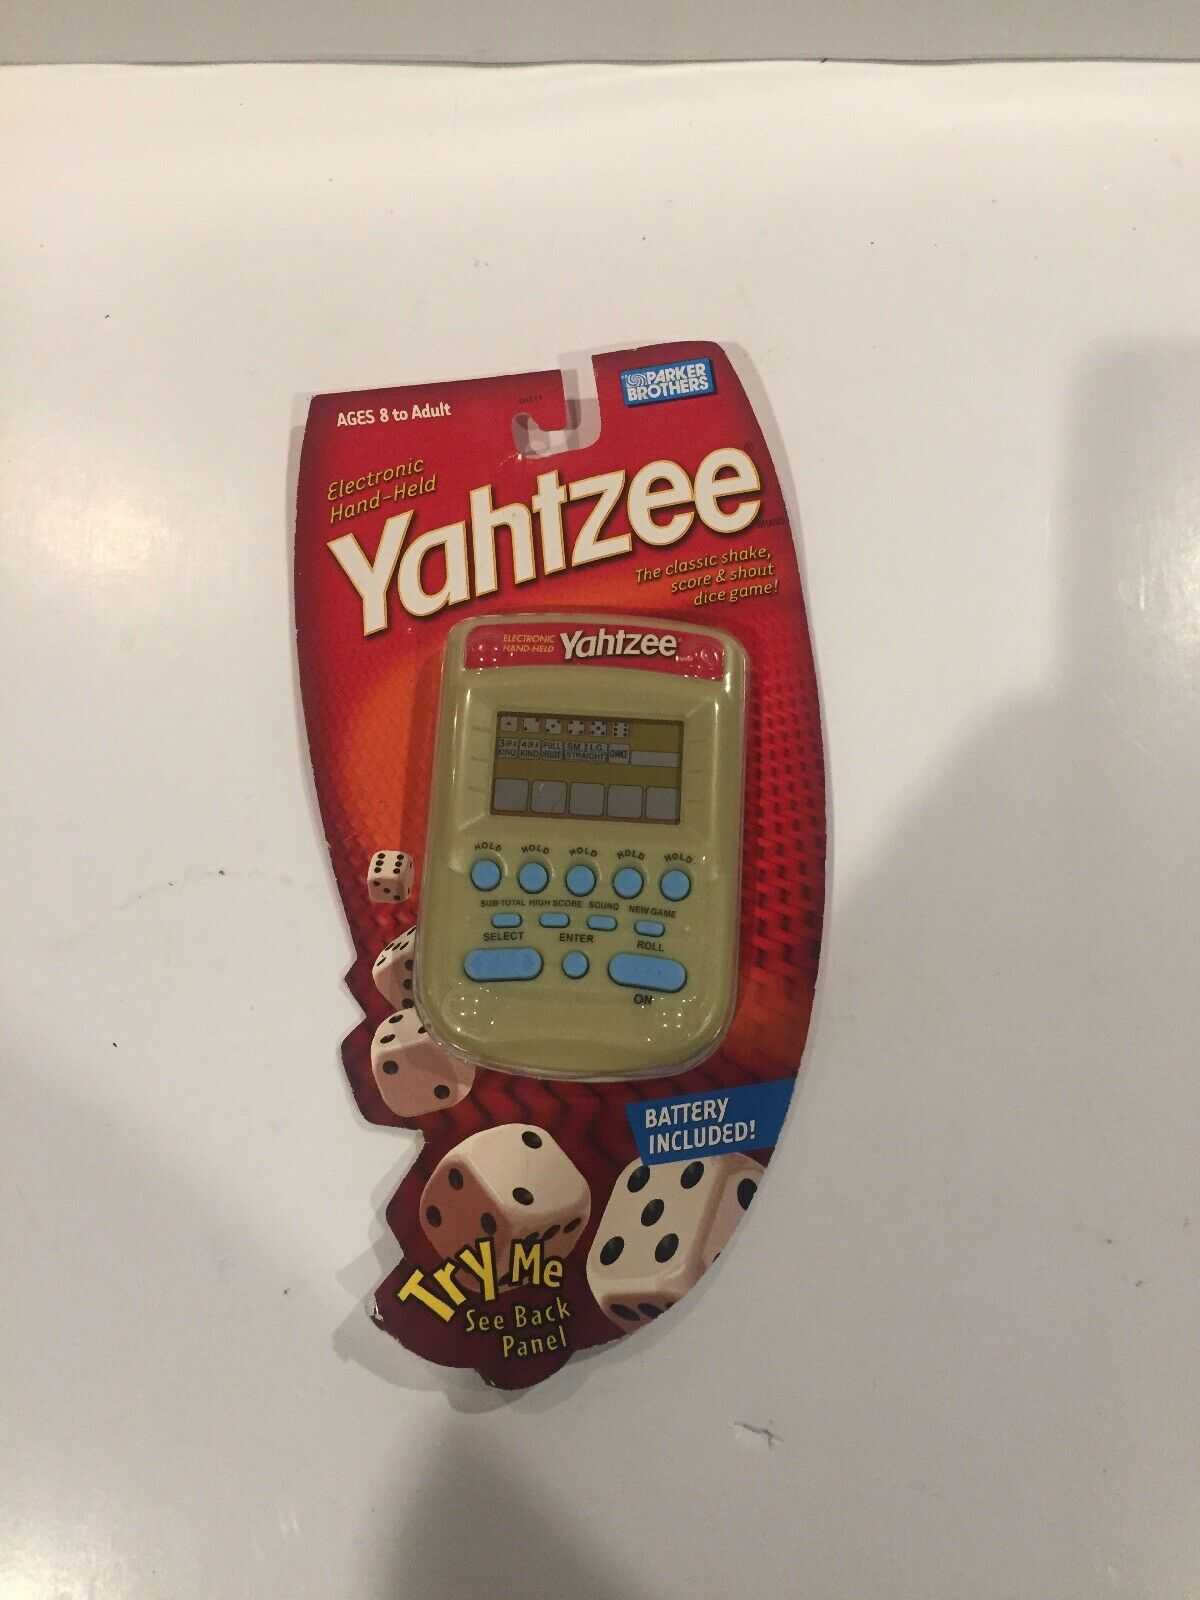 NEW Yahtzee Handheld Electronic Game Hasbro (2004) gold Cream bluee Button Rare